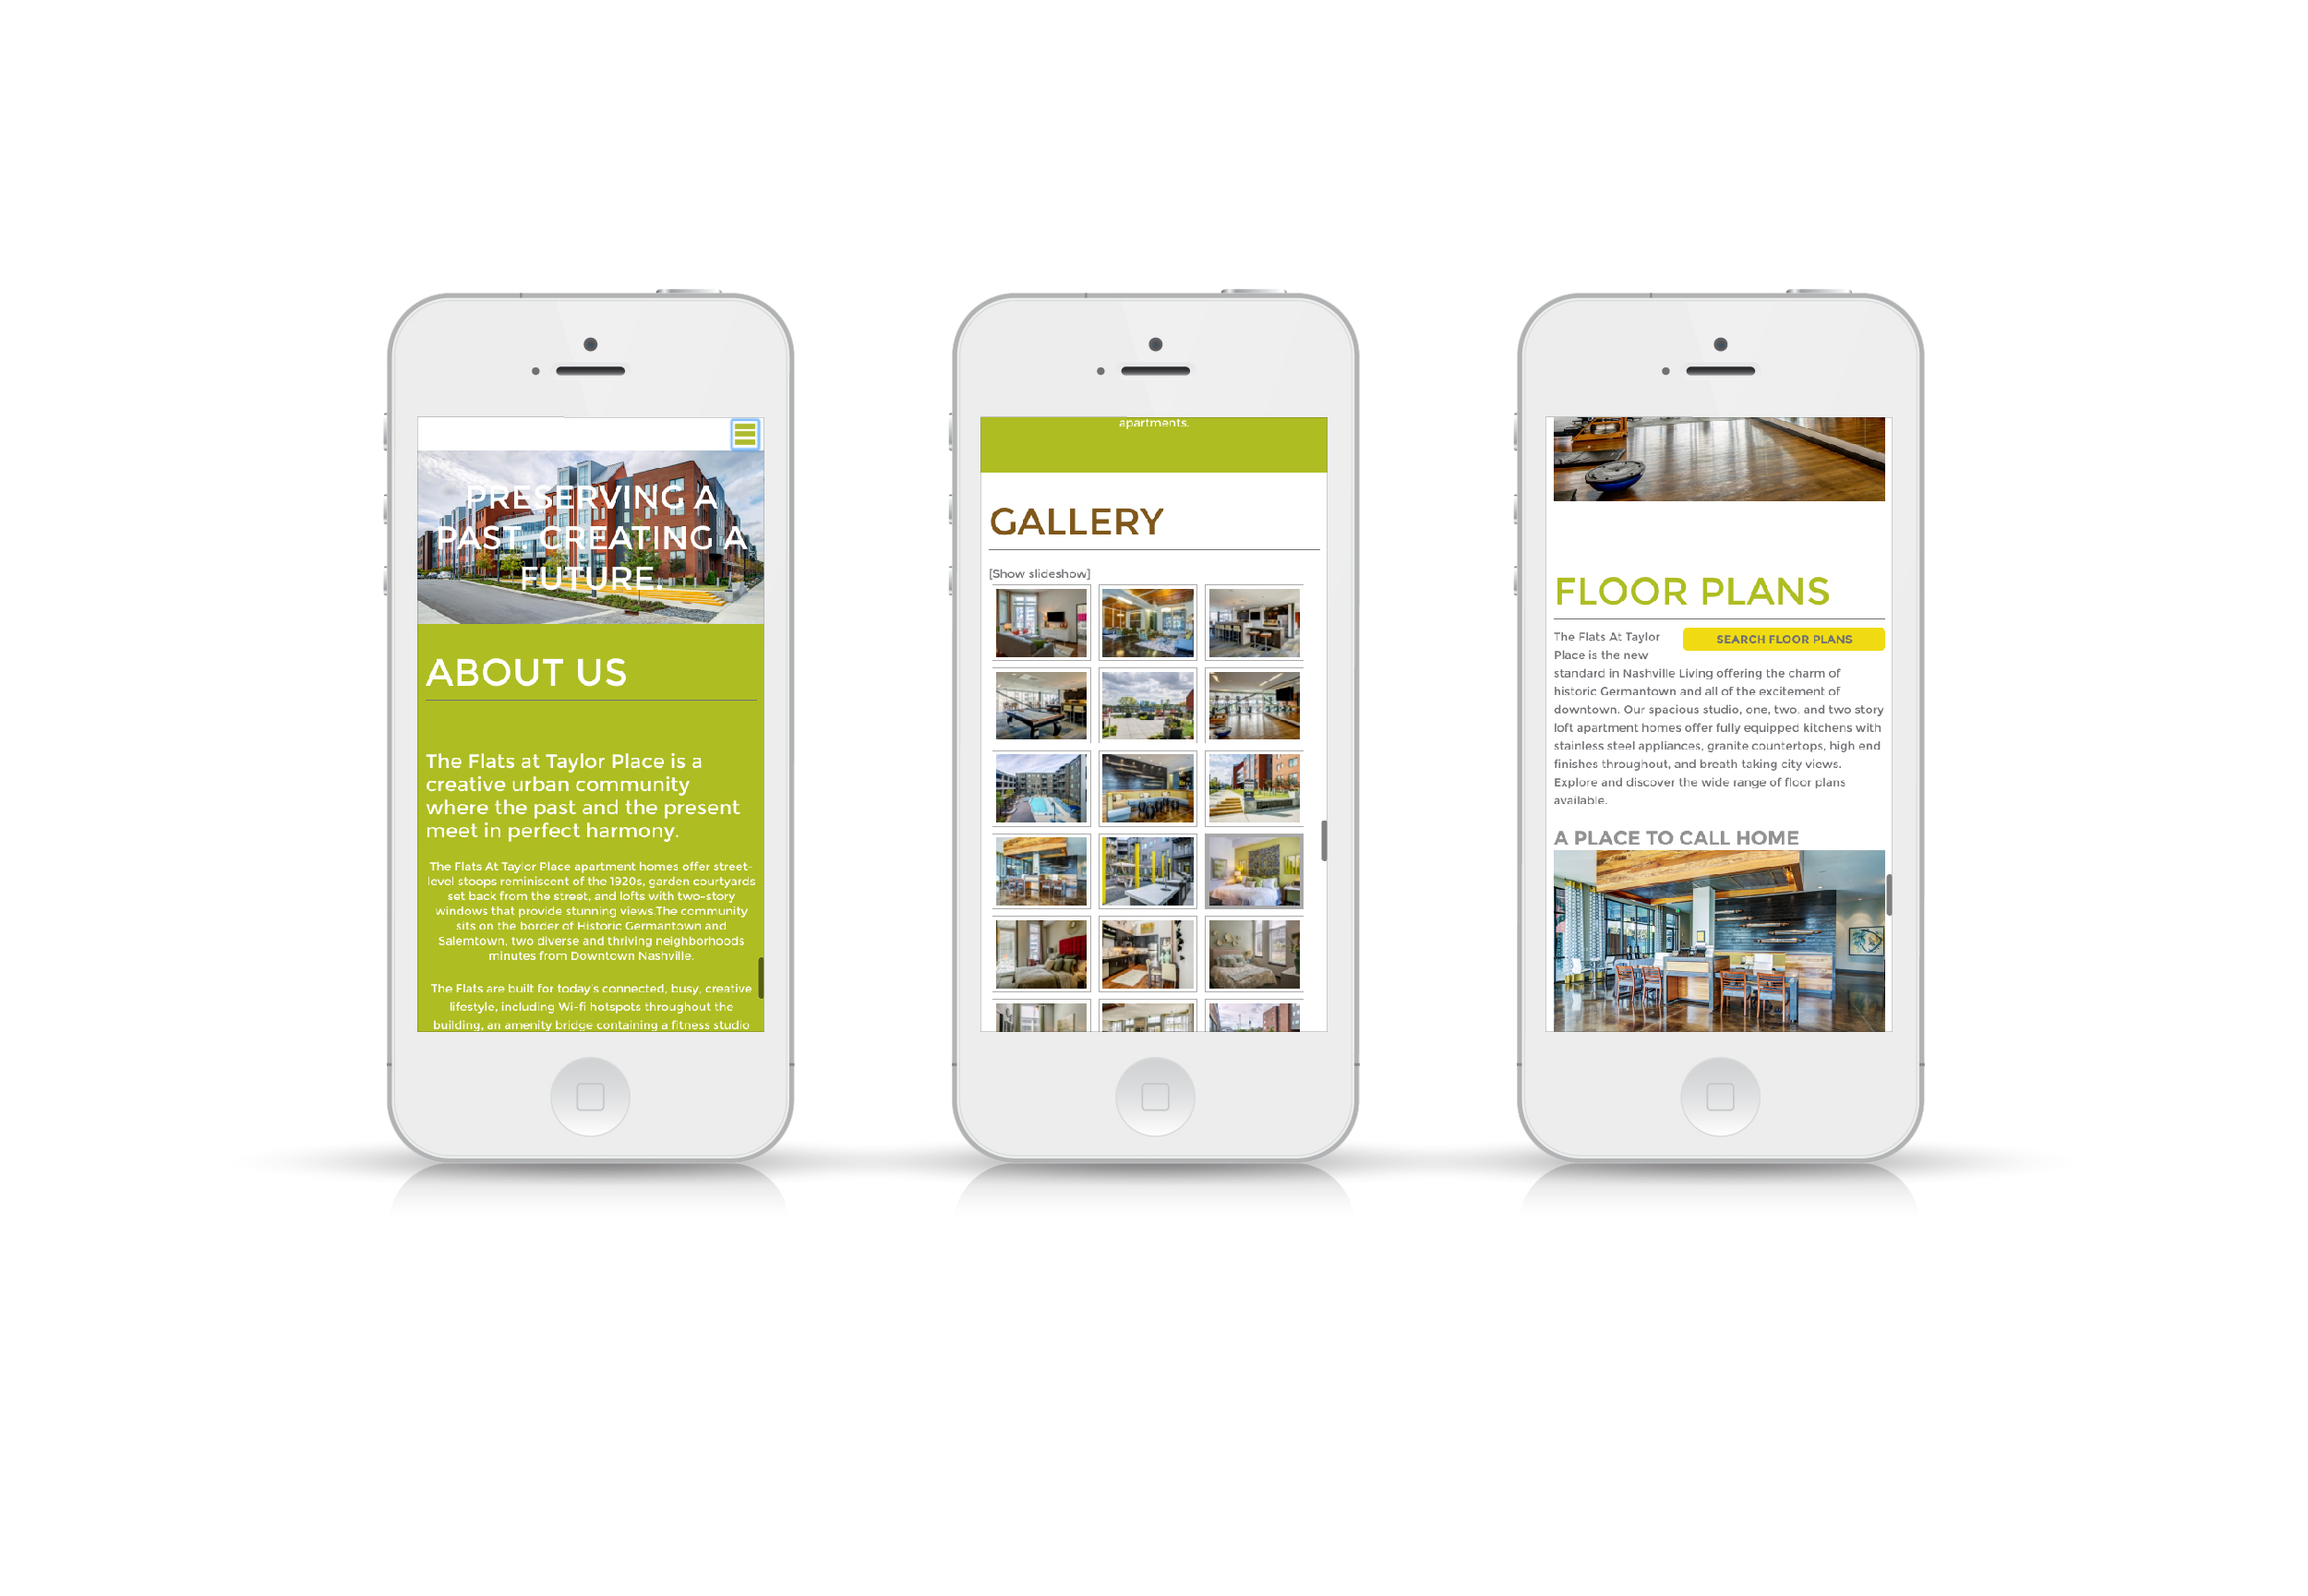 The Flats at Taylor Place Website On Phone Screen